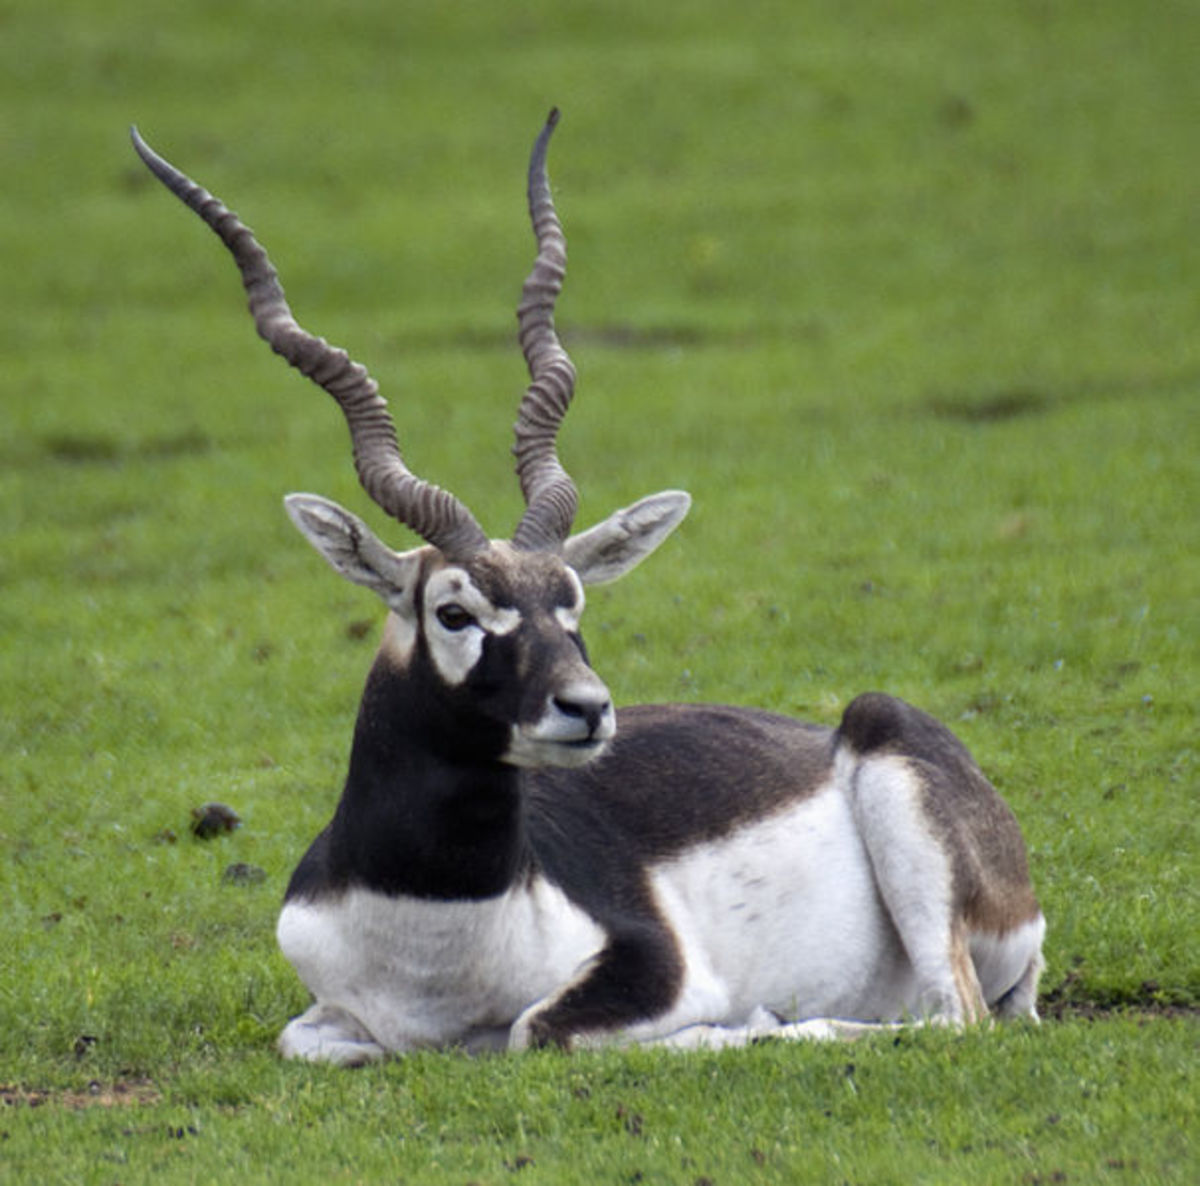 The blackbuck is one animal that has been imported so some parts of the country, mostly as a game animal.